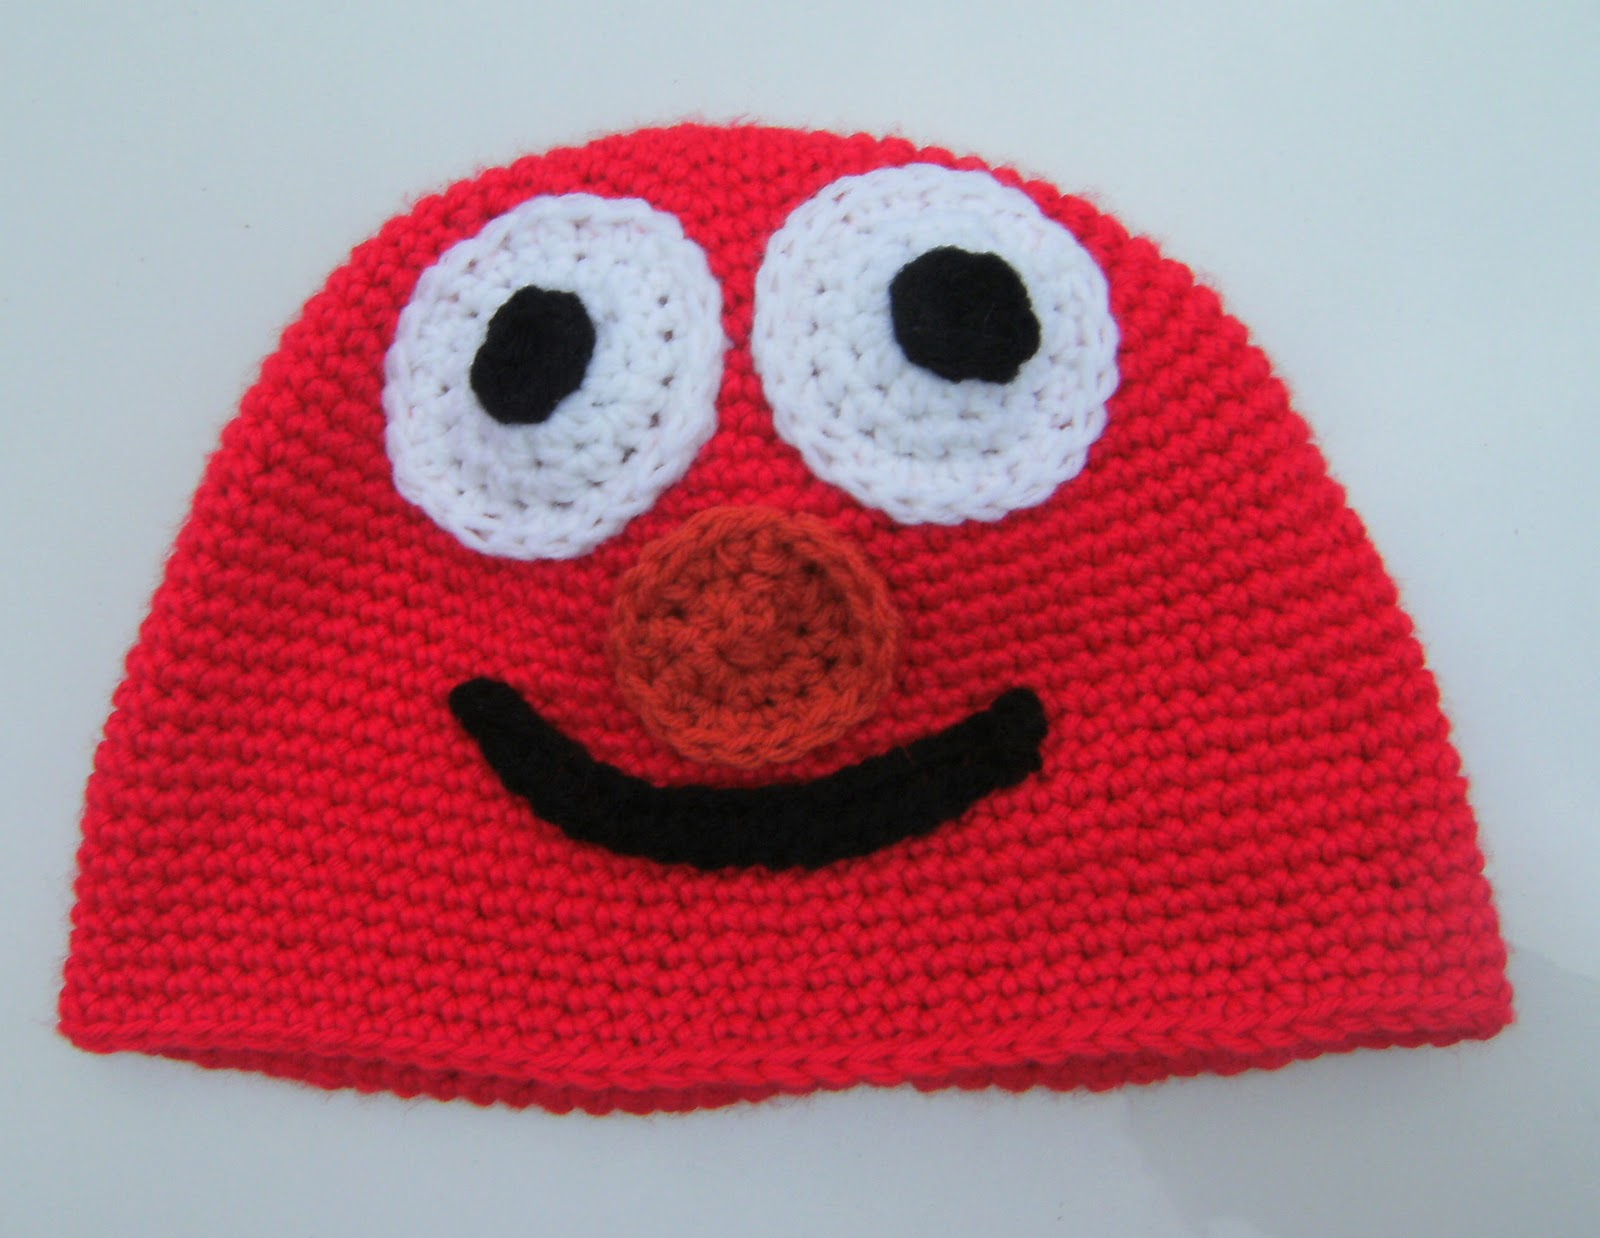 Elmo Knitting Pattern : Projects Around the House: Elmo Crochet Hat Pattern